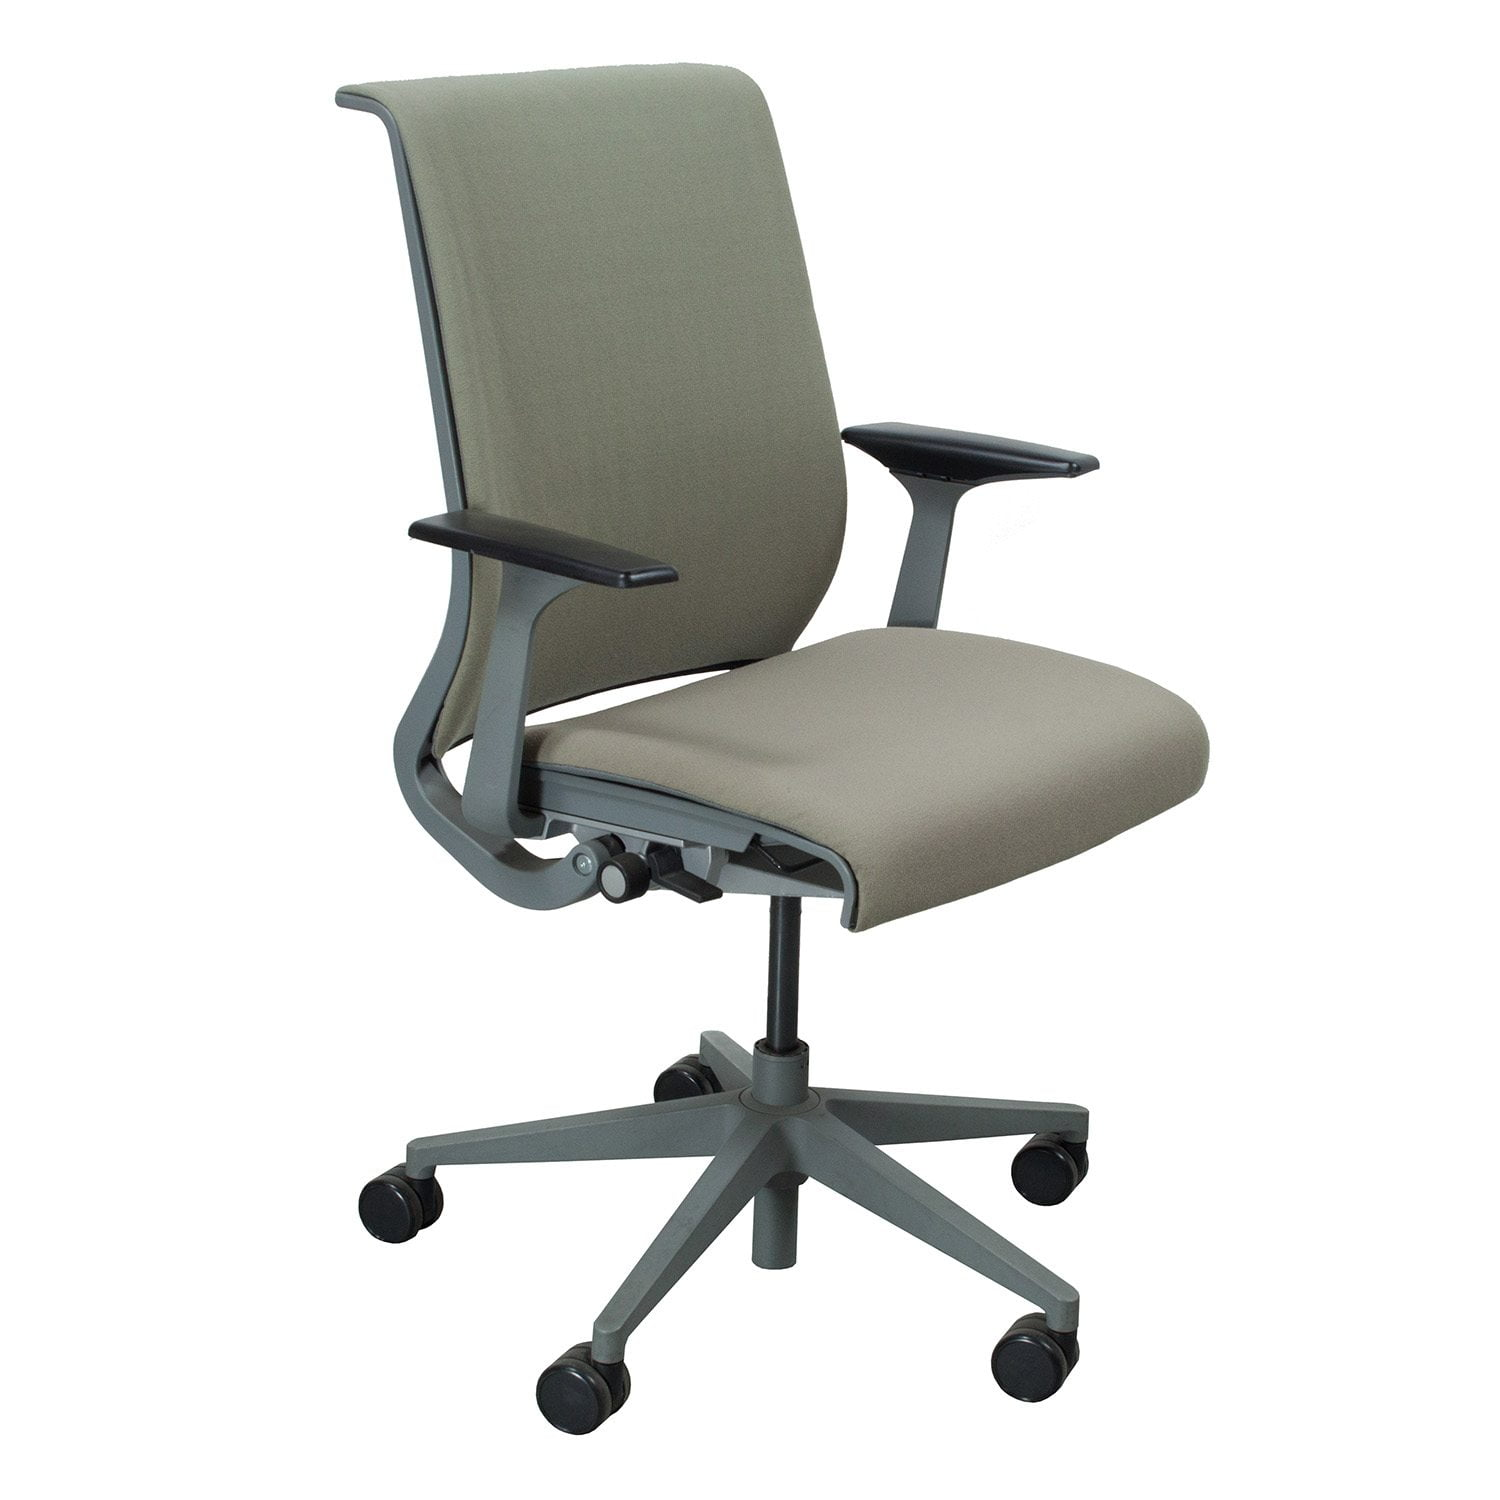 Steelcase Think Used Conference Chair, Balsam